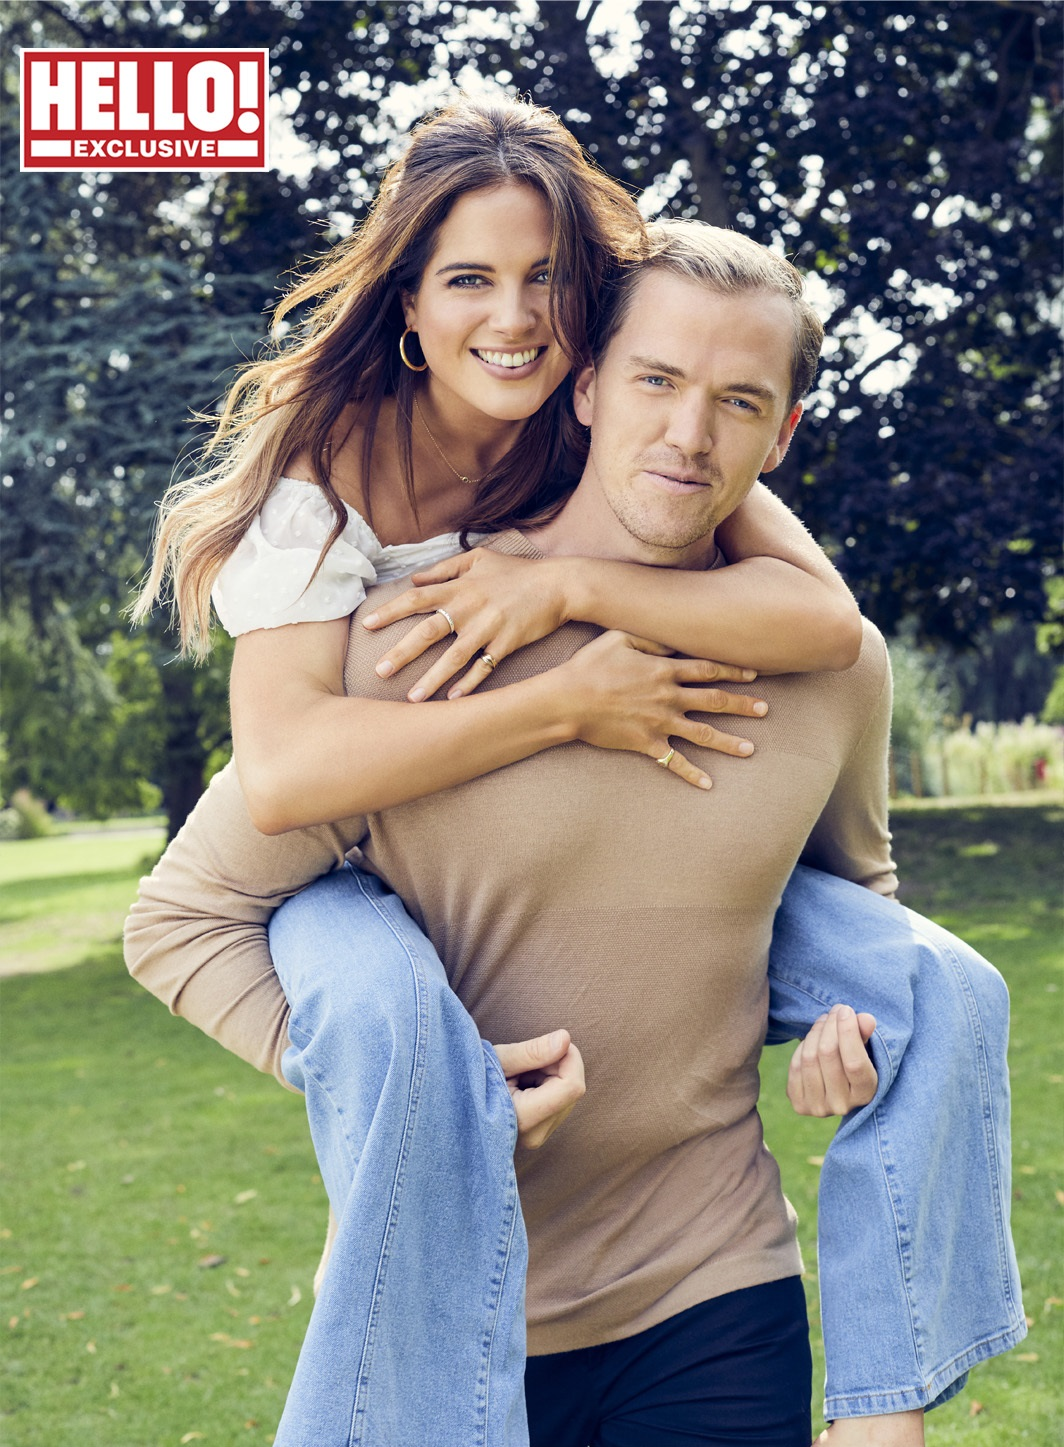 BiBinky Felstead introduces her new partner Max Fredrik Darnton